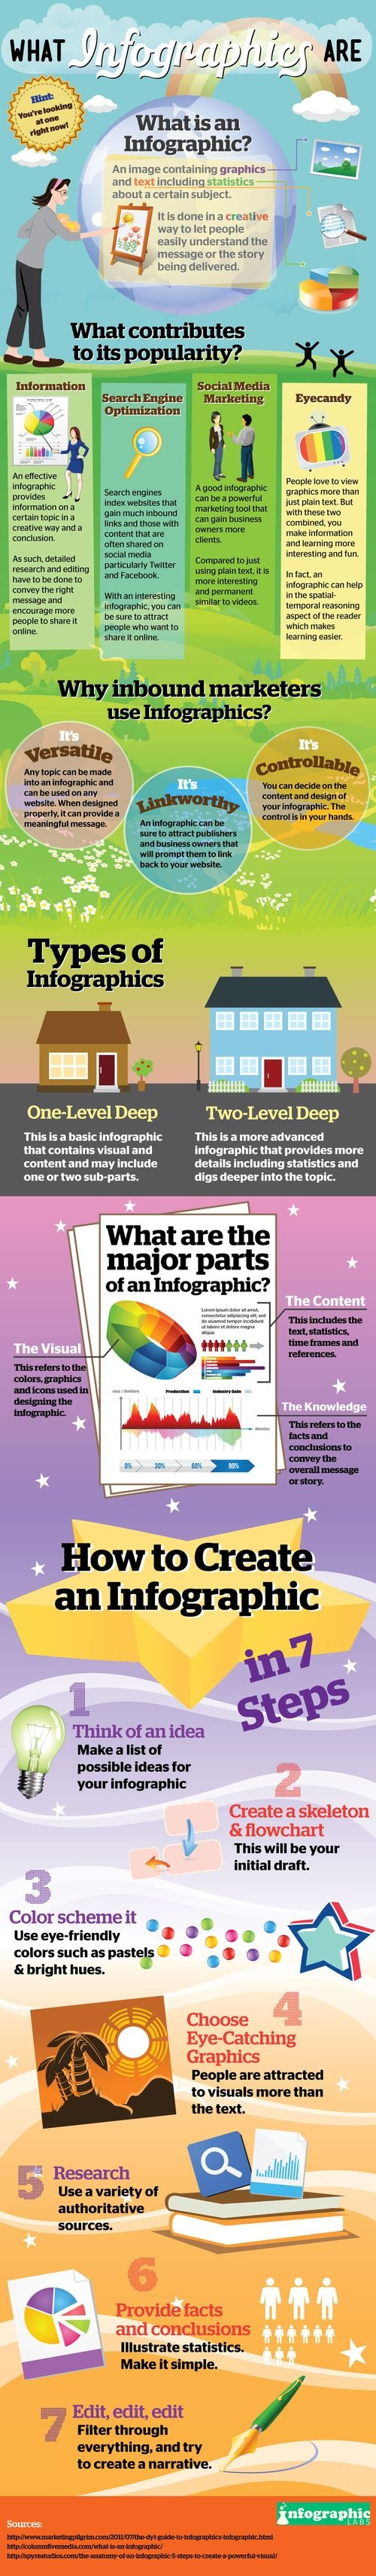 Infographics are a popular way to transmit information because people love the visual content.  People also love to share this type of content on blogs and social media.  They are especially popular on Pinterest.  Try sharing an infographic on your sites!  They're easy to find; do a search using your industry keywords along with the term 'infographic'.  Try it!  http://www.dailynewsrush.com/2012/07/tips-for-developing-an-effective-infographic.html